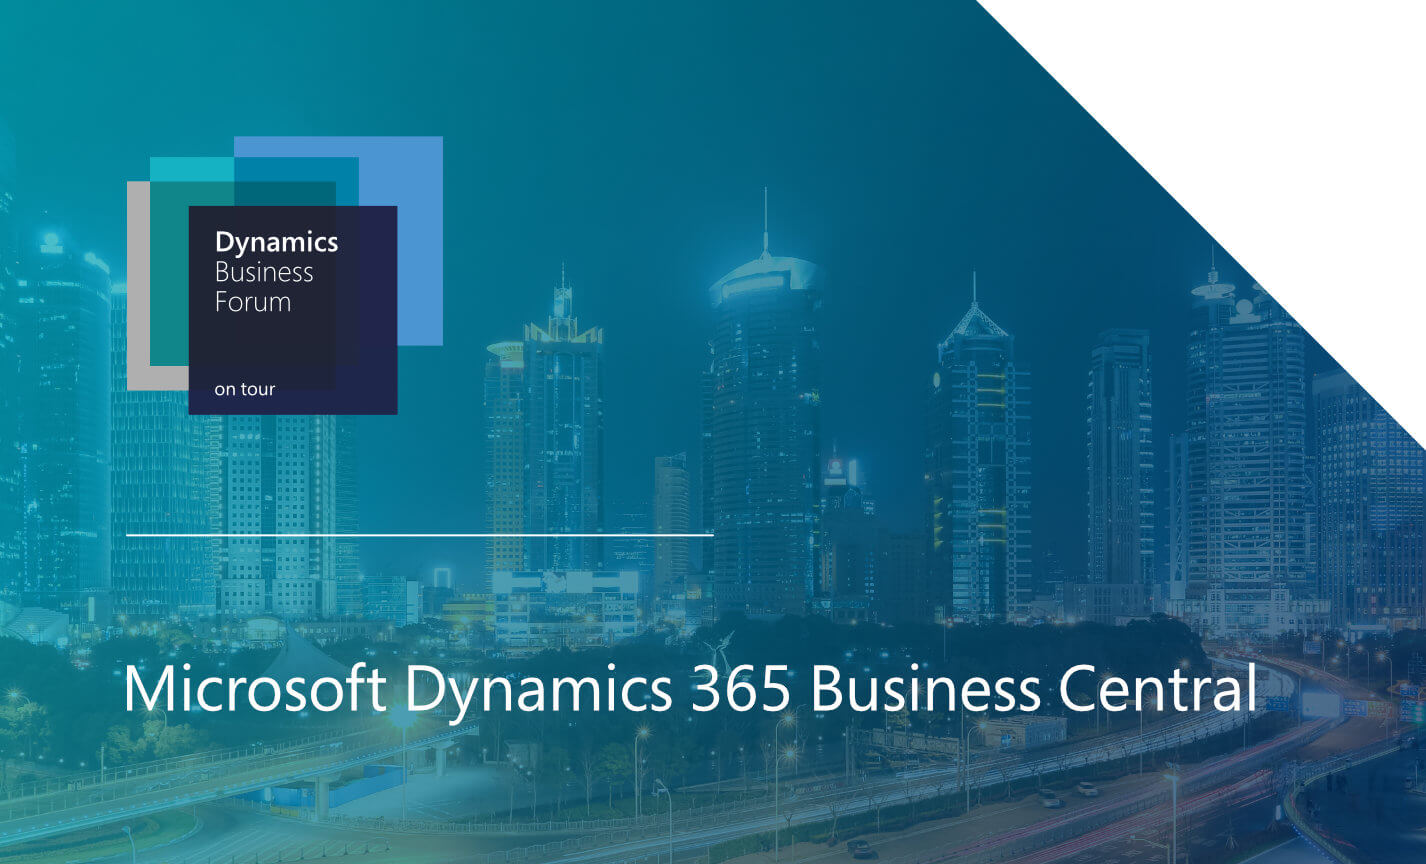 Dynamics Business Forum 2019